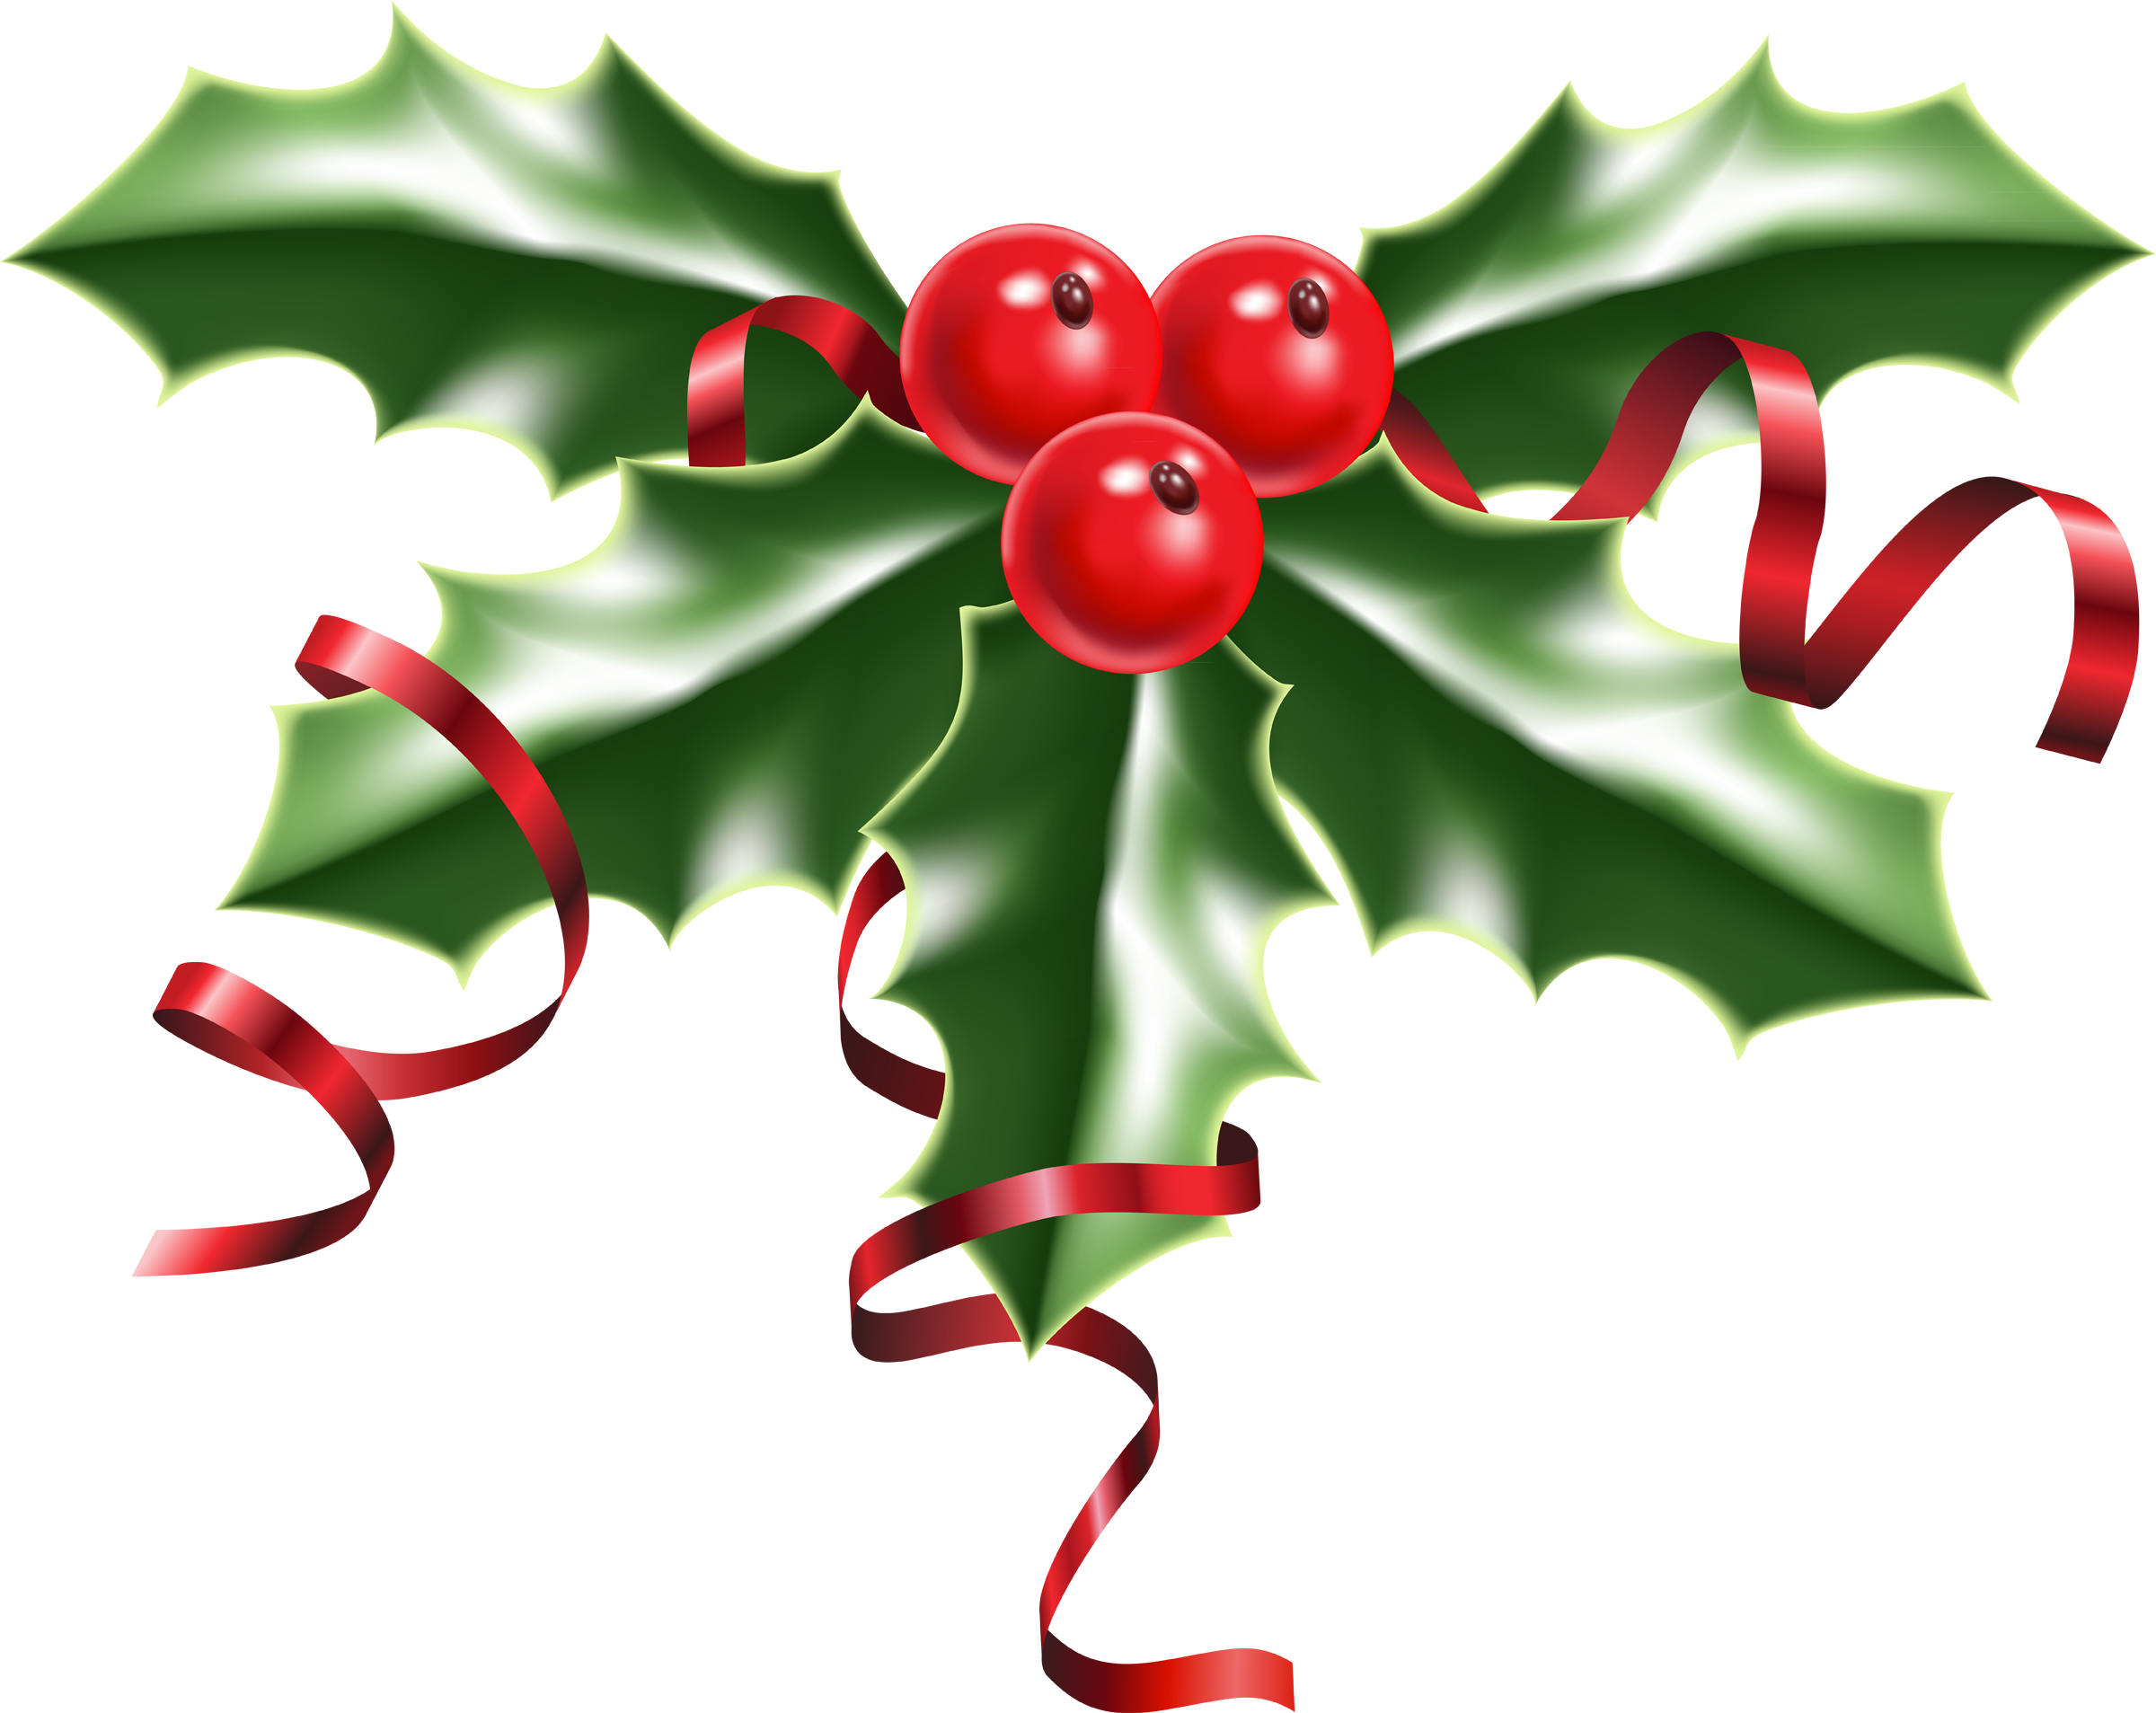 Free Christmas Holly Images, Download Free Clip Art, Free Clip Art.